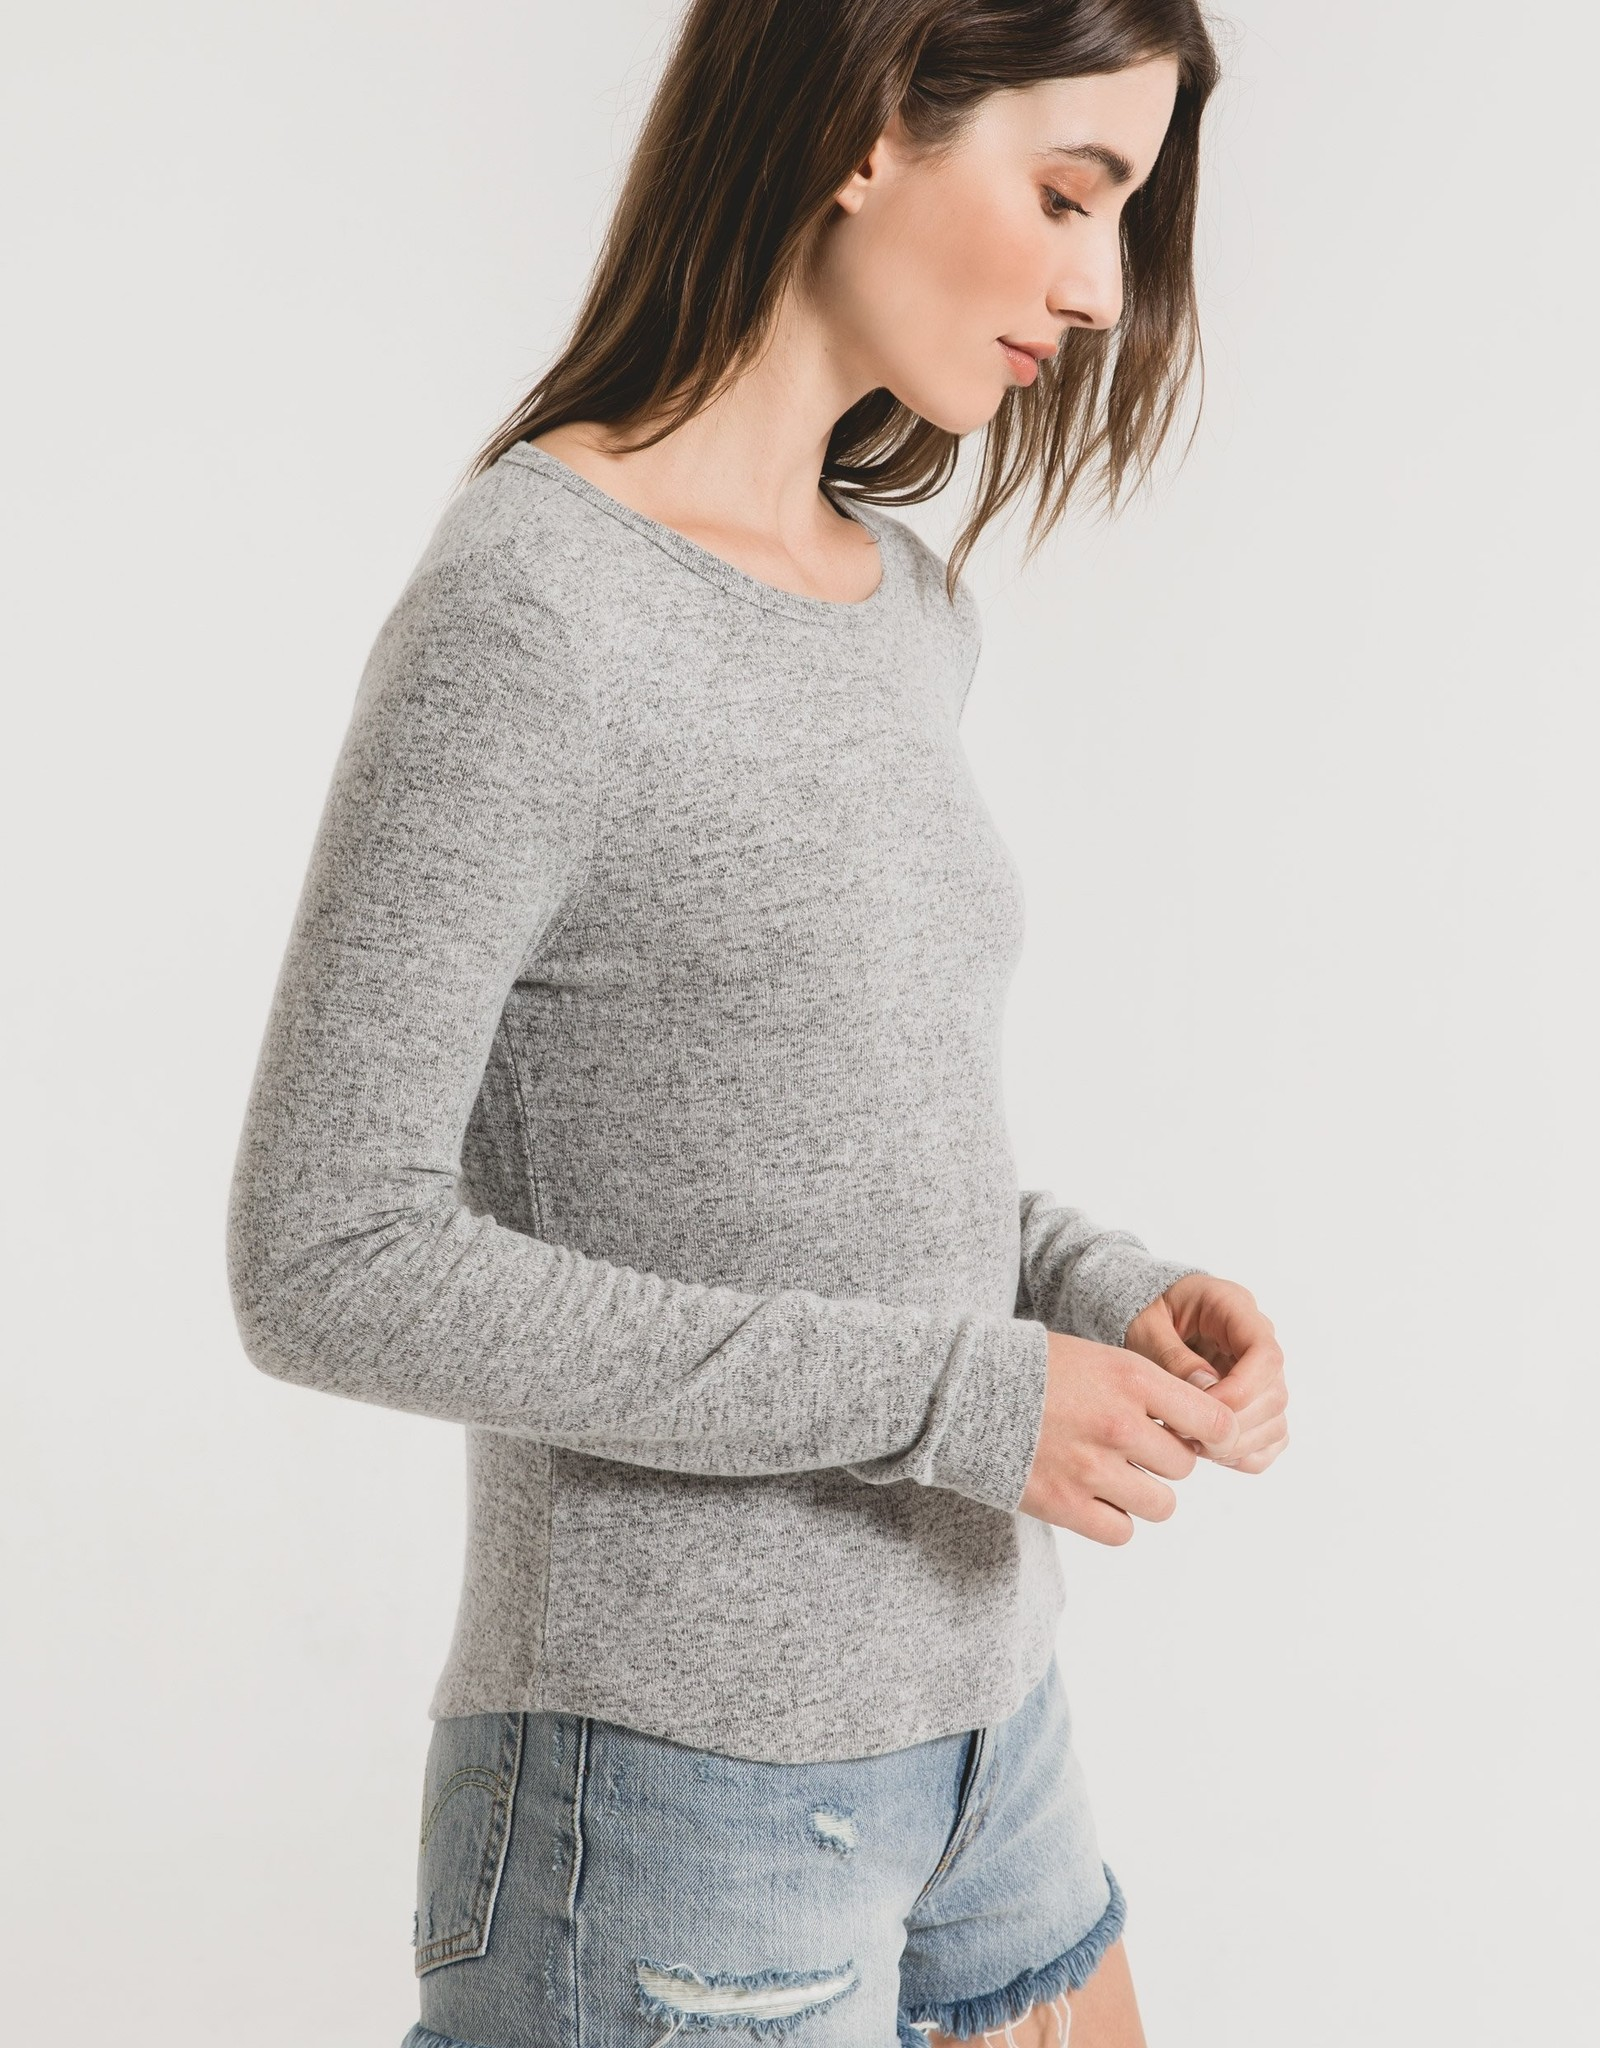 Long Sleeve Fitted Top